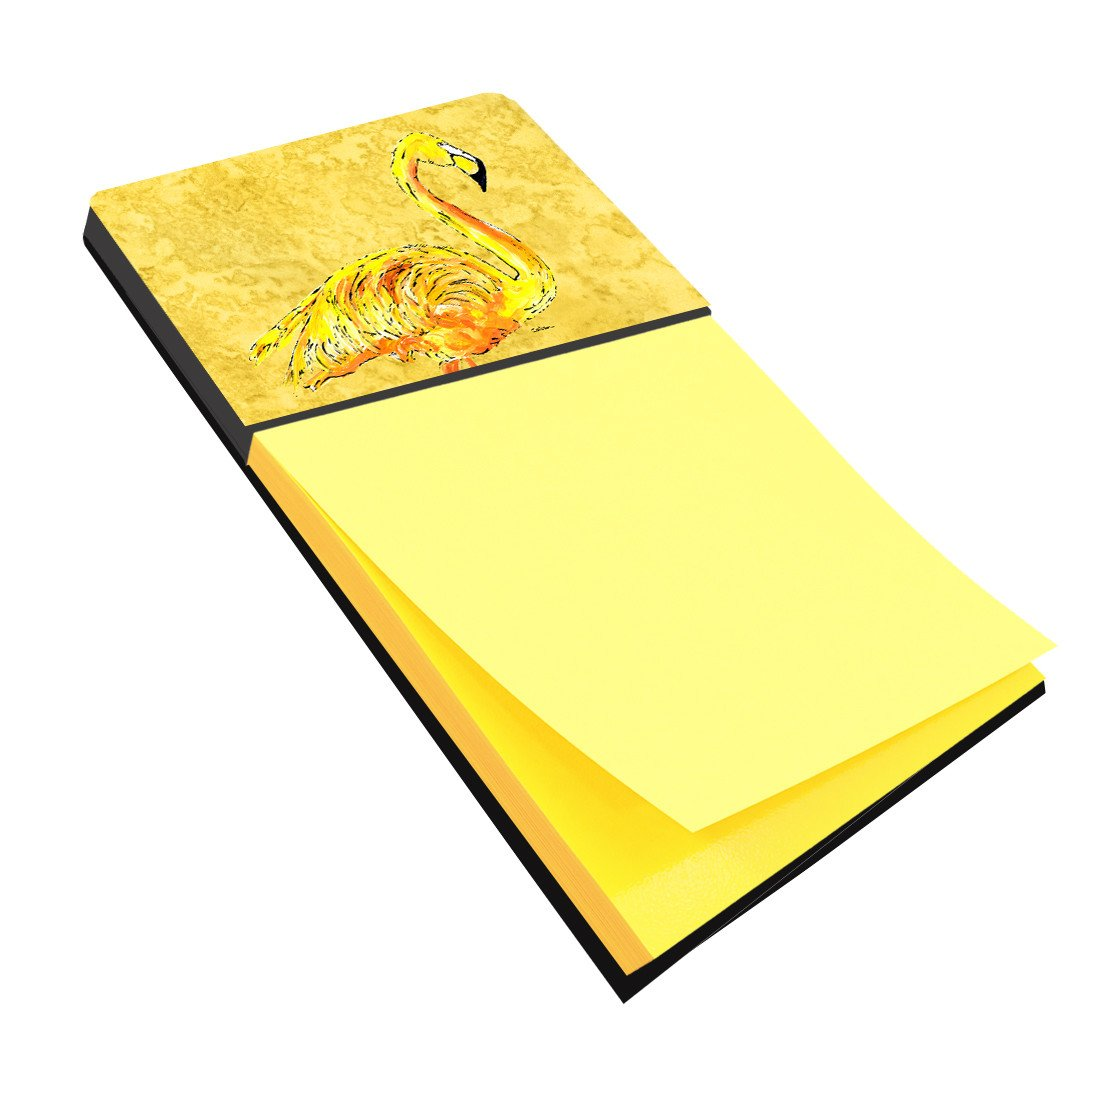 Flamingo on Yellow Refiillable Sticky Note Holder or Postit Note Dispenser 8872SN by Caroline's Treasures